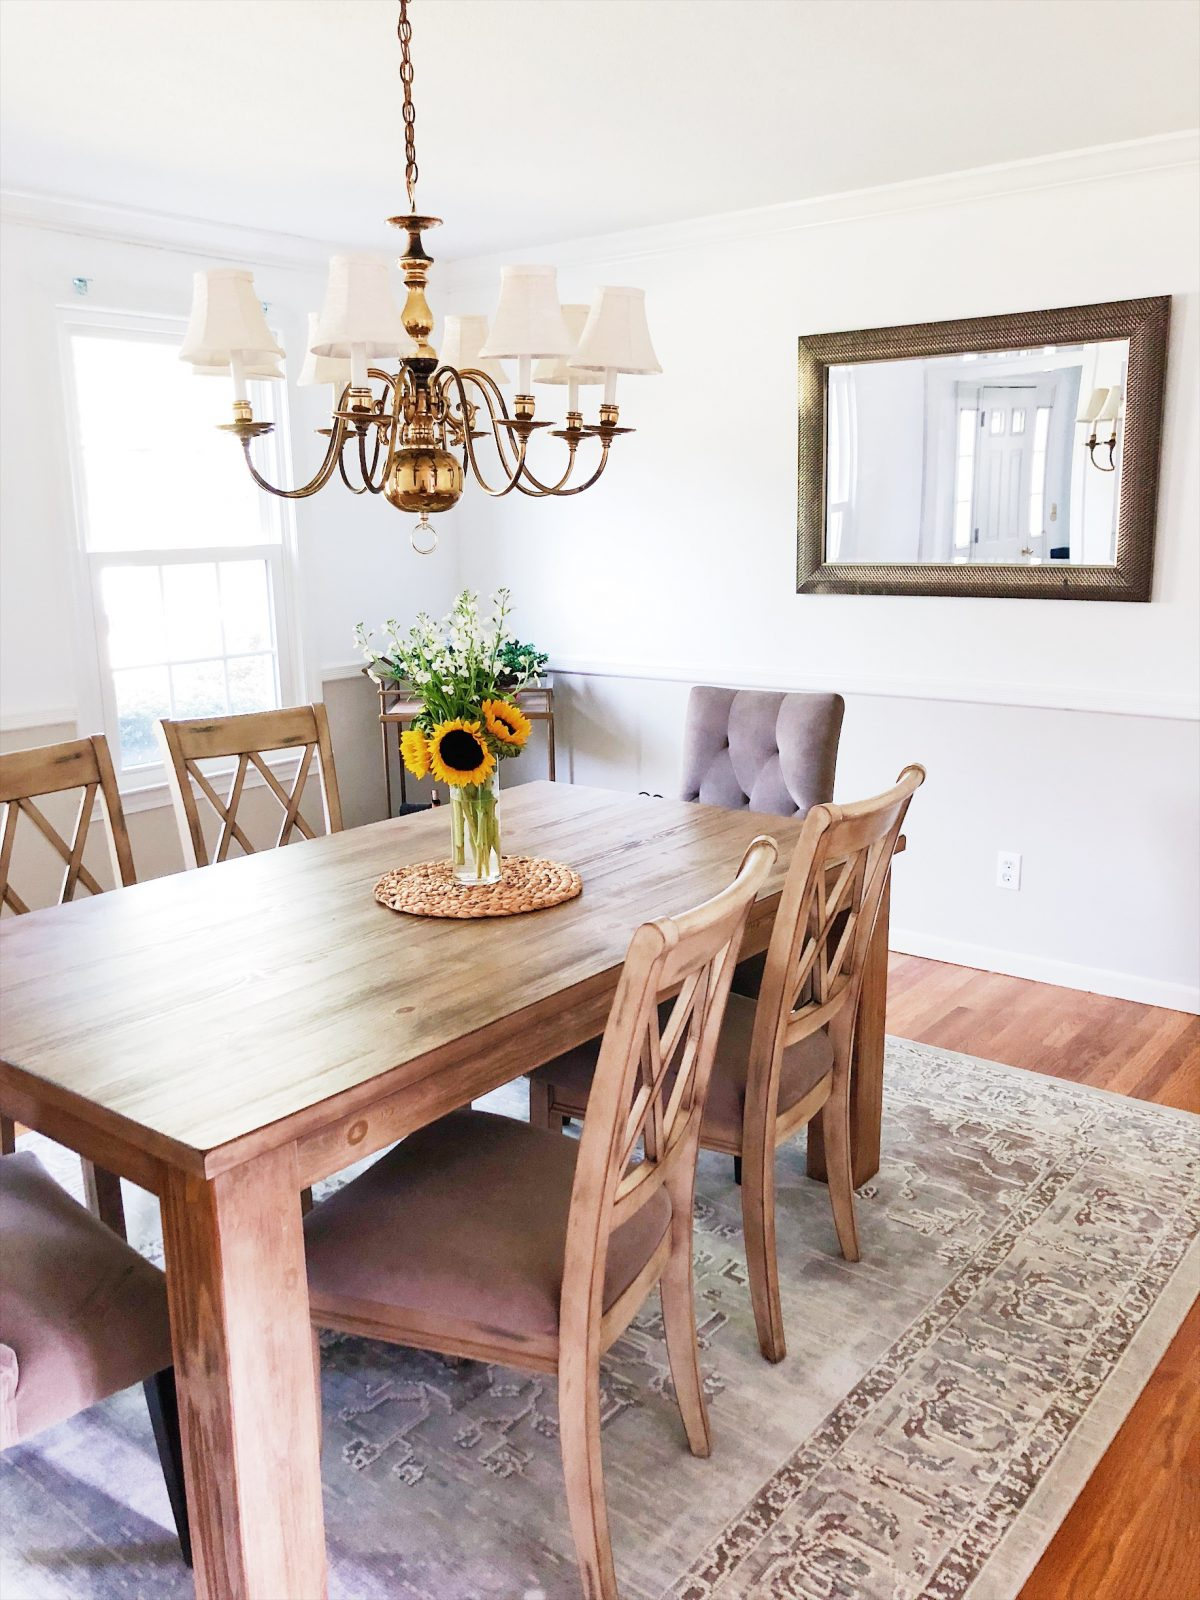 5 light Shaded Gold Chandelier over dining room table with sunflower centerpiece